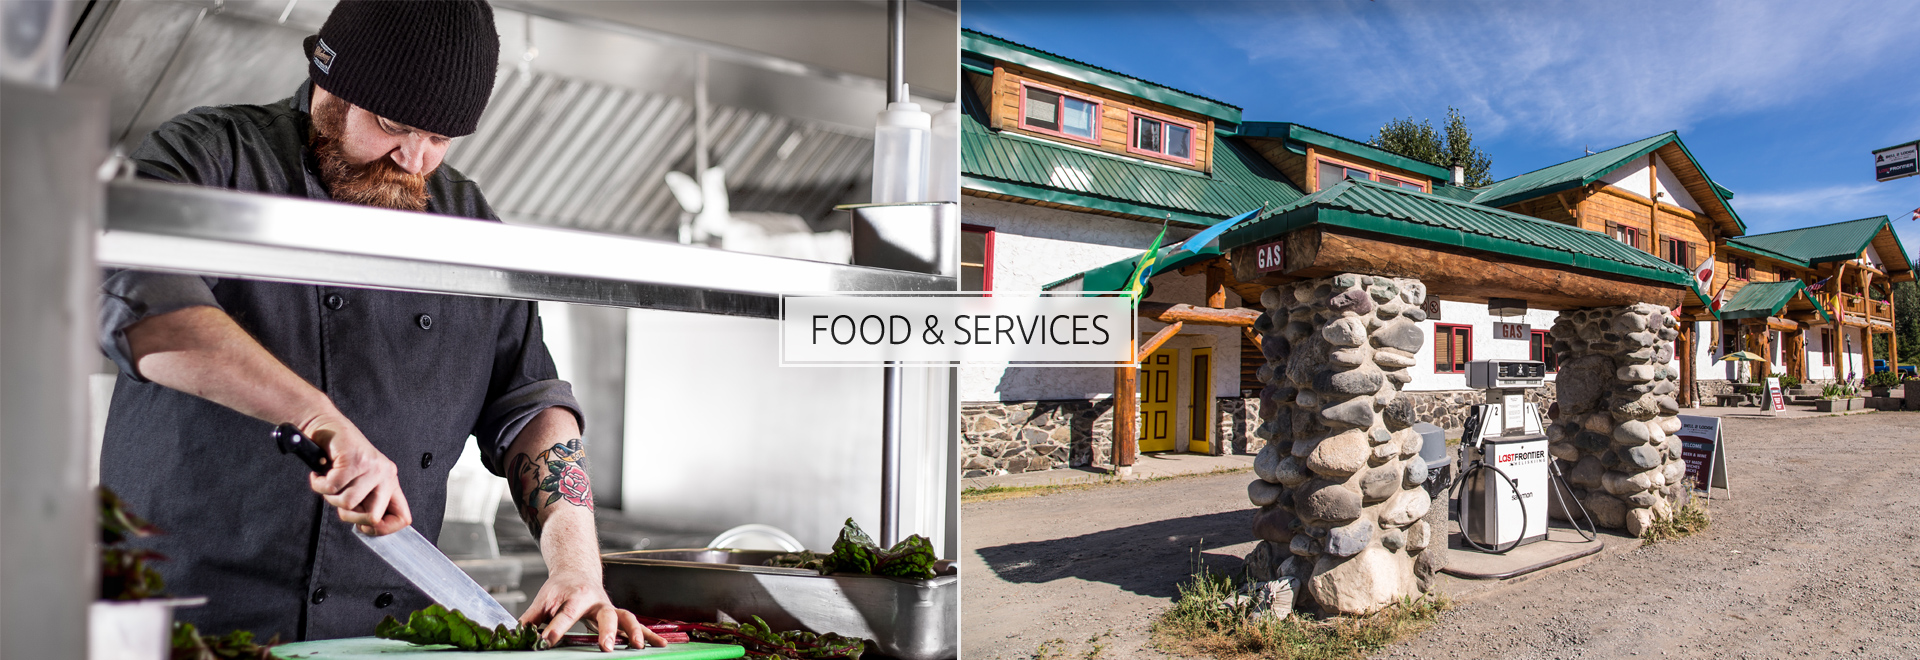 Food & Gas Services at Bell 2 Lodge